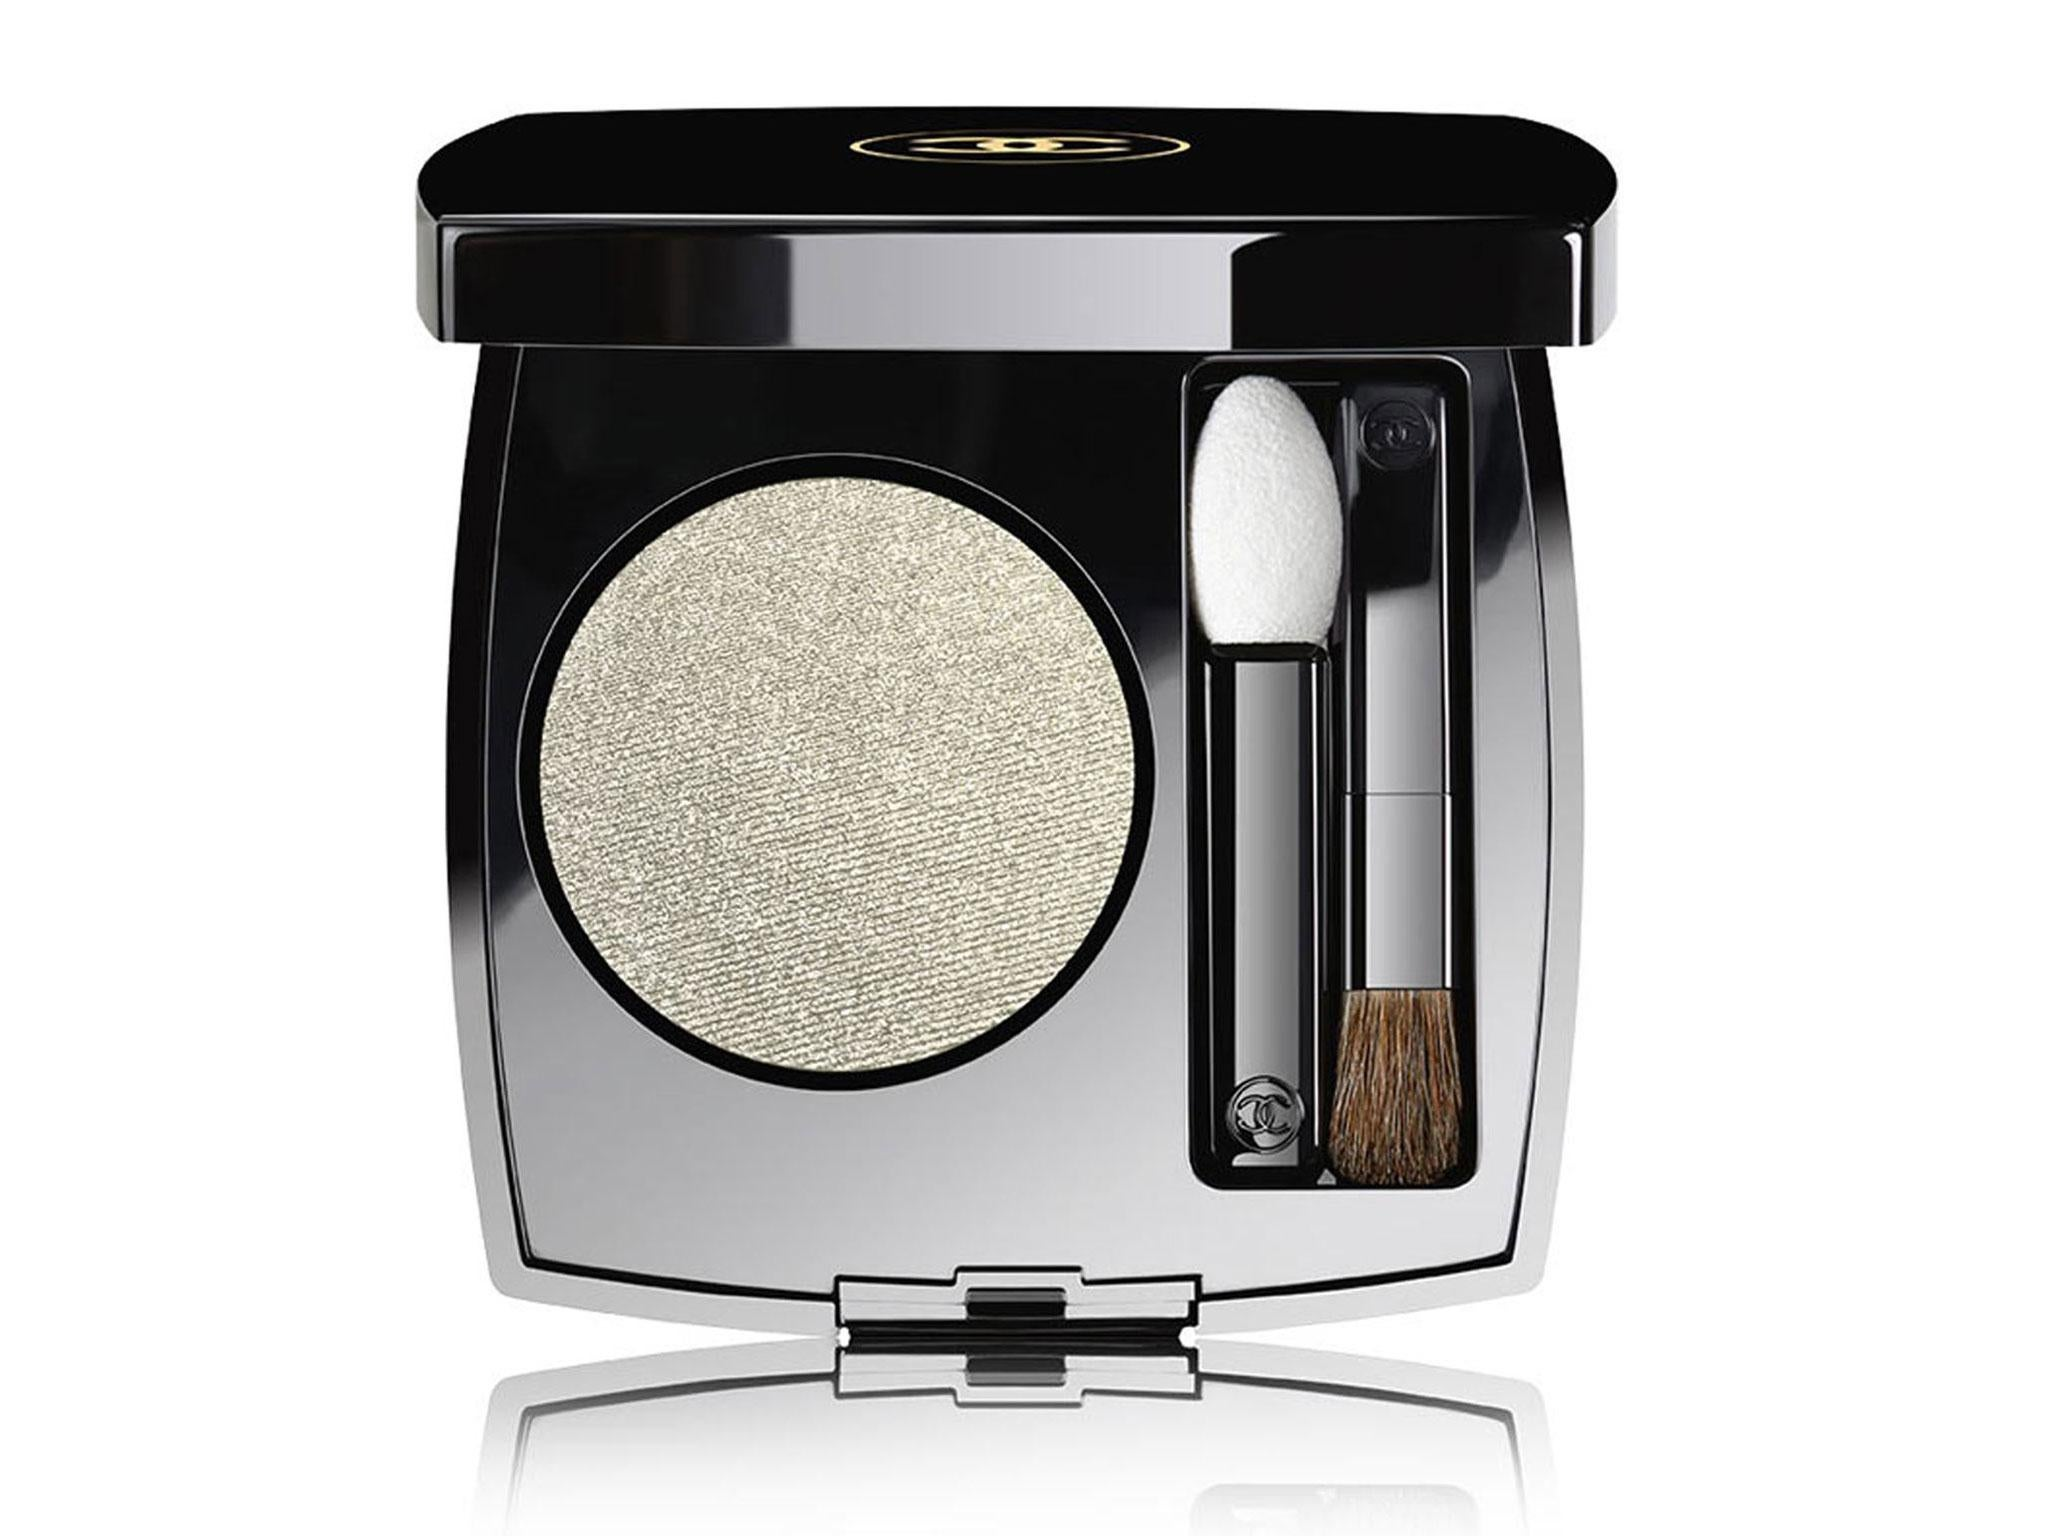 13 Best Eye Makeup Products For Mature Skin The Independent